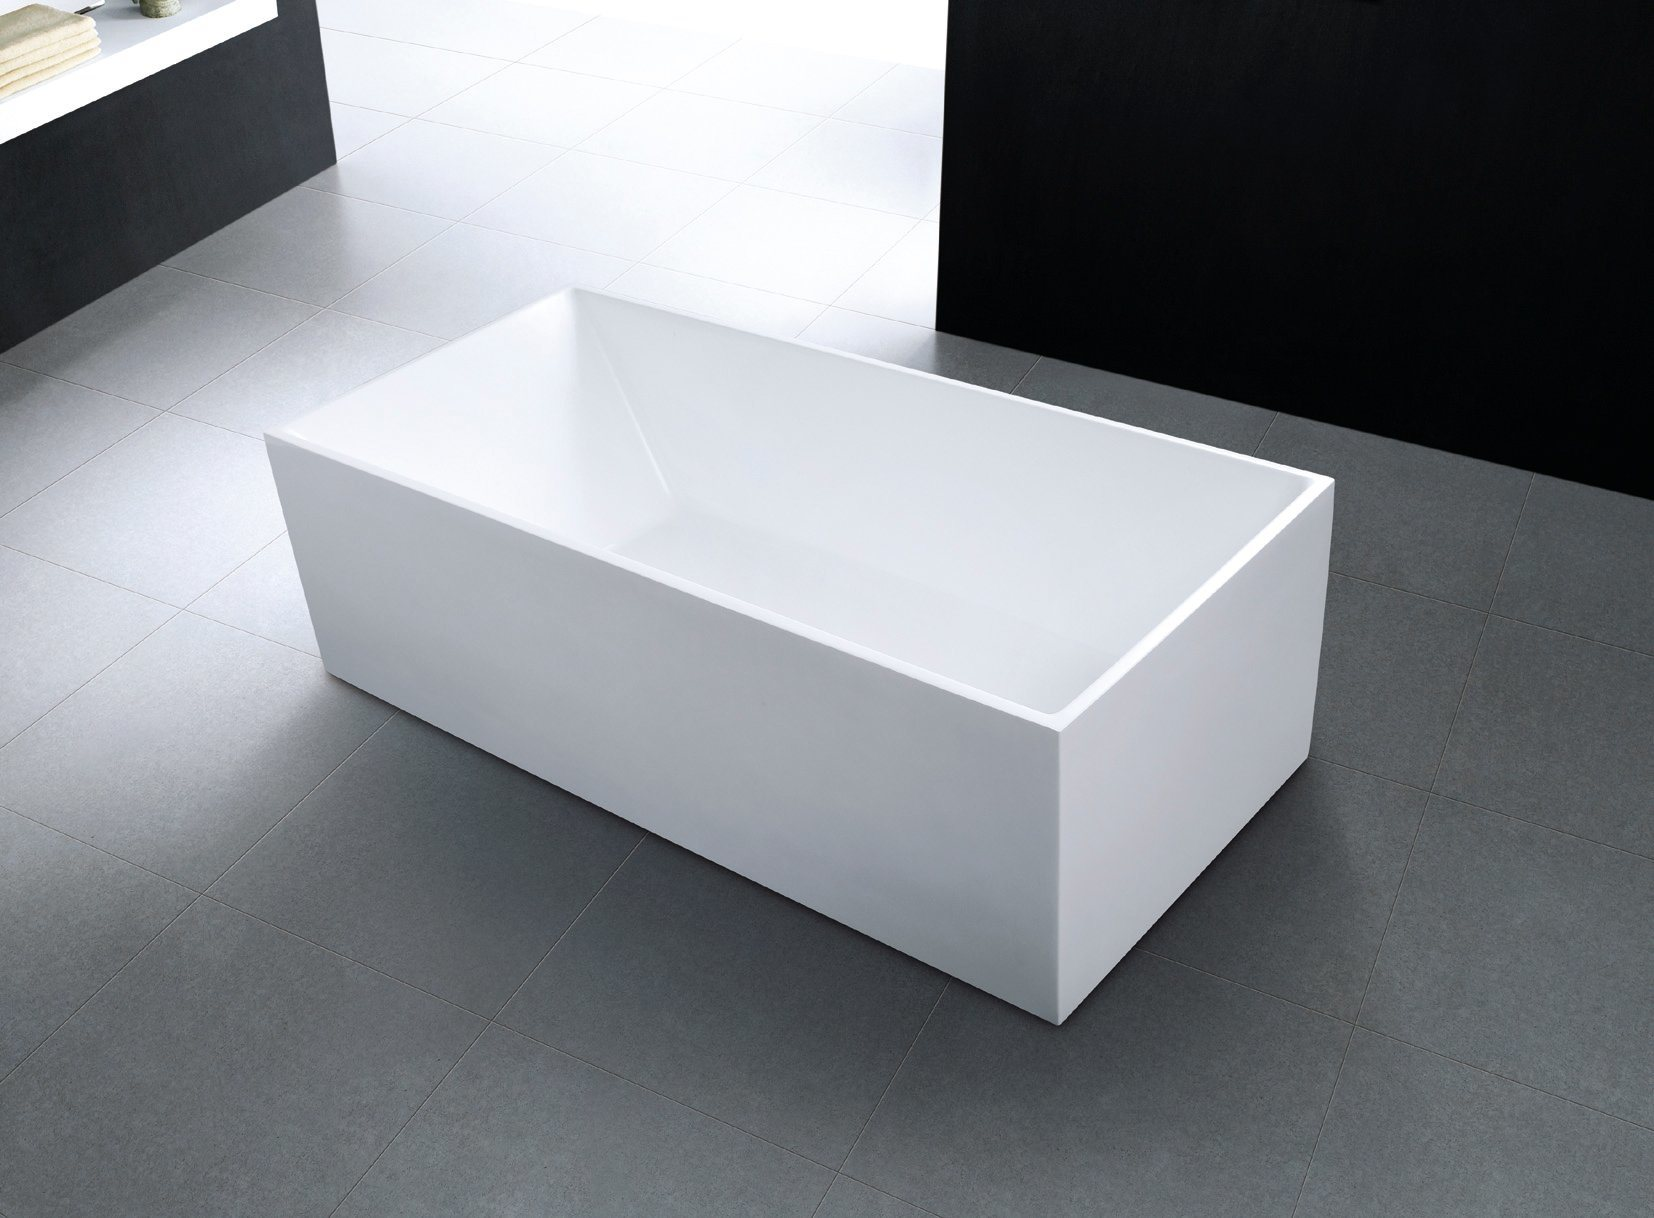 China Hot Selling Square Slim Rim Freestanding Acrylic Bath Tub ...